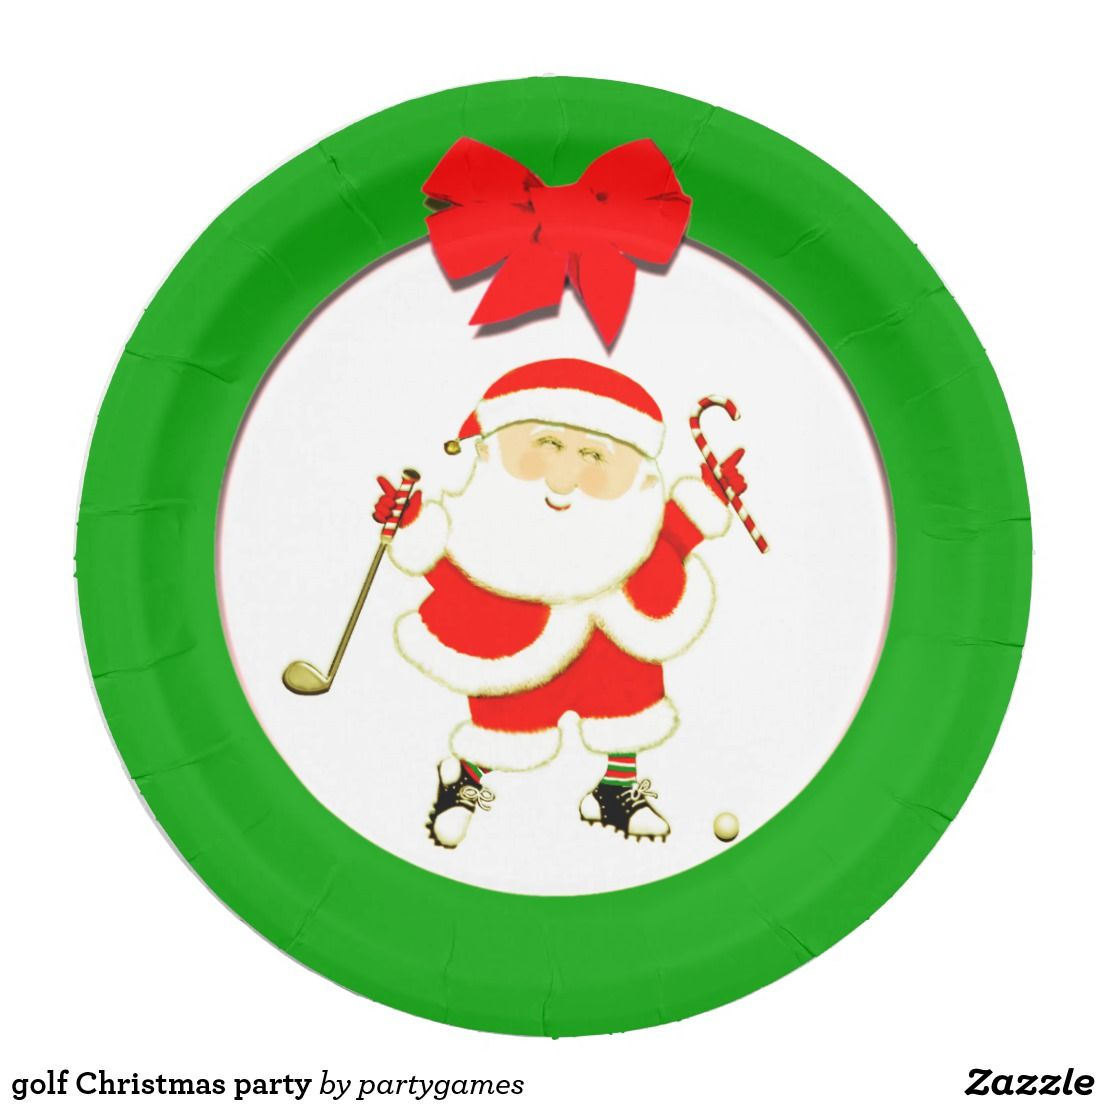 golf Christmas party Paper Plate | Golf Christmas and New Year ...